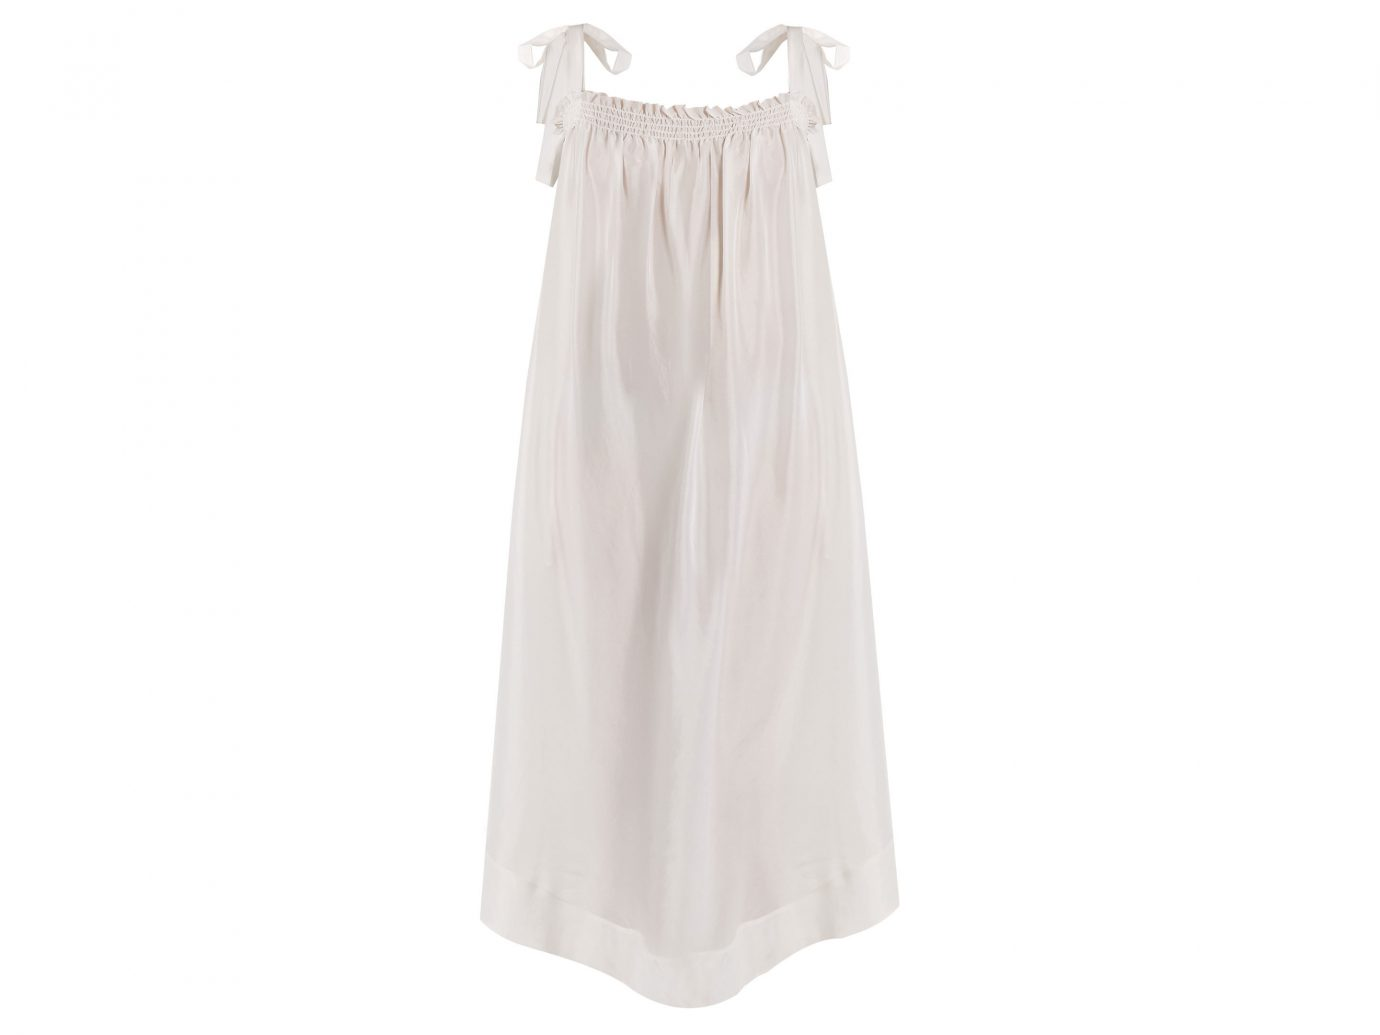 Style + Design Travel Shop white dress day dress clothing shoulder joint gown cocktail dress bridal party dress product neck bridal clothing wedding dress nightgown bridal accessory